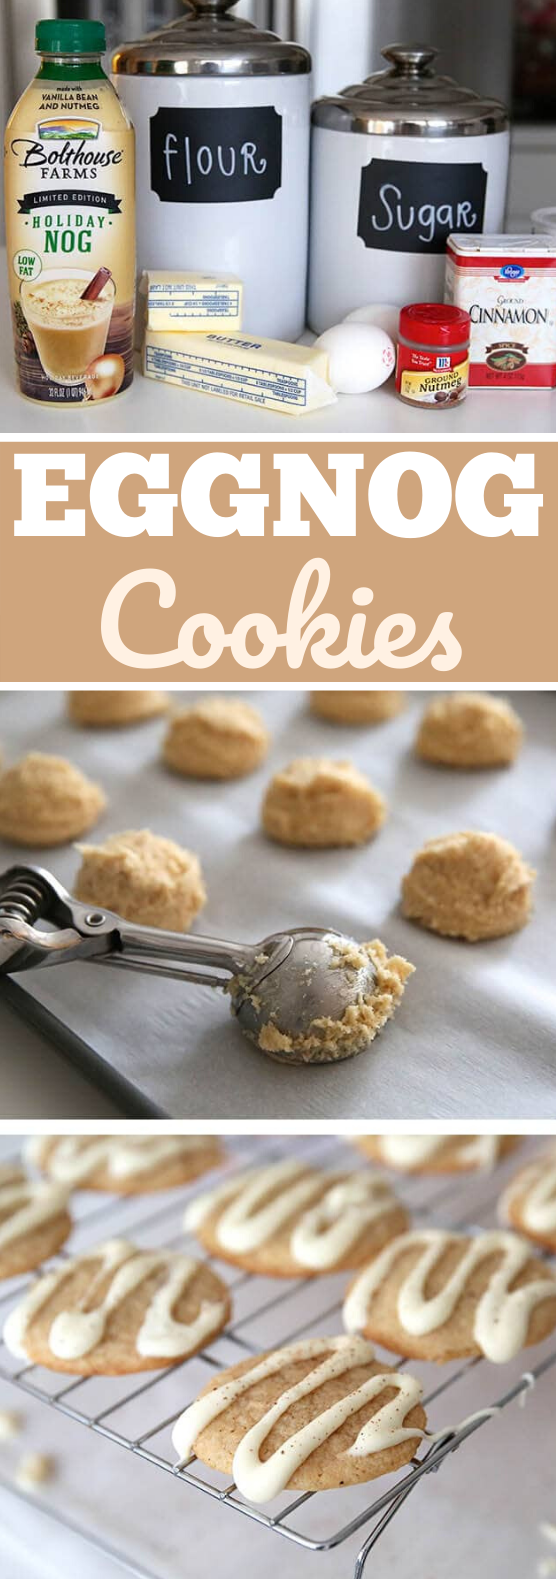 Eggnog Cookies #cookies #recipe #baking #desserts #holiday